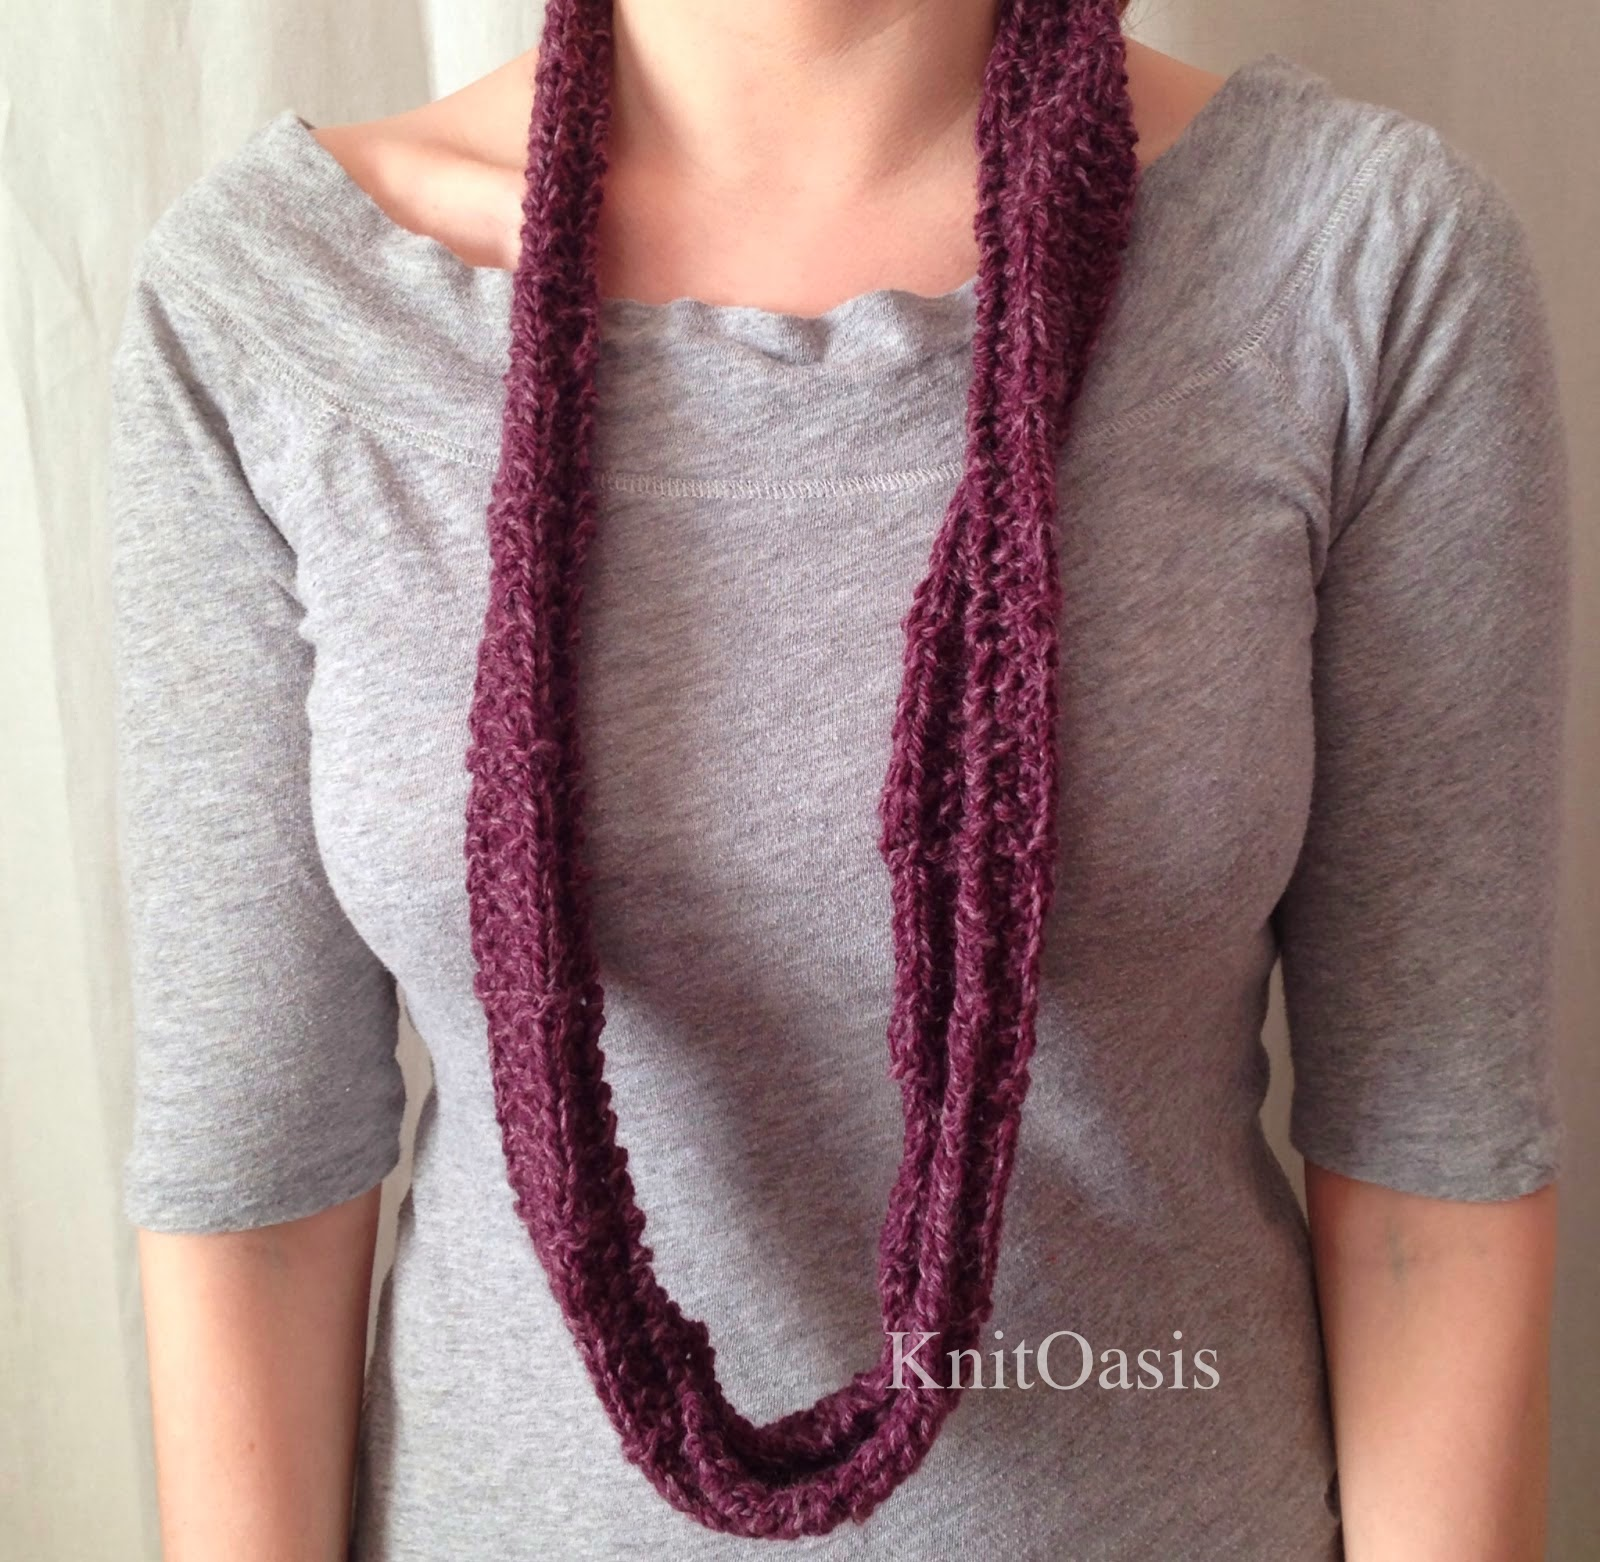 Knit Oasis Creations